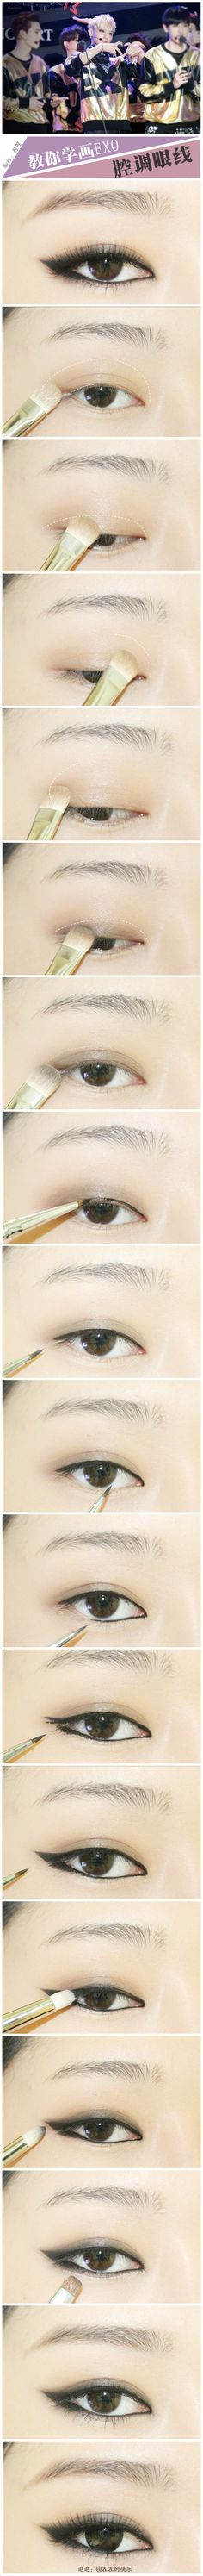 Tao eye make up